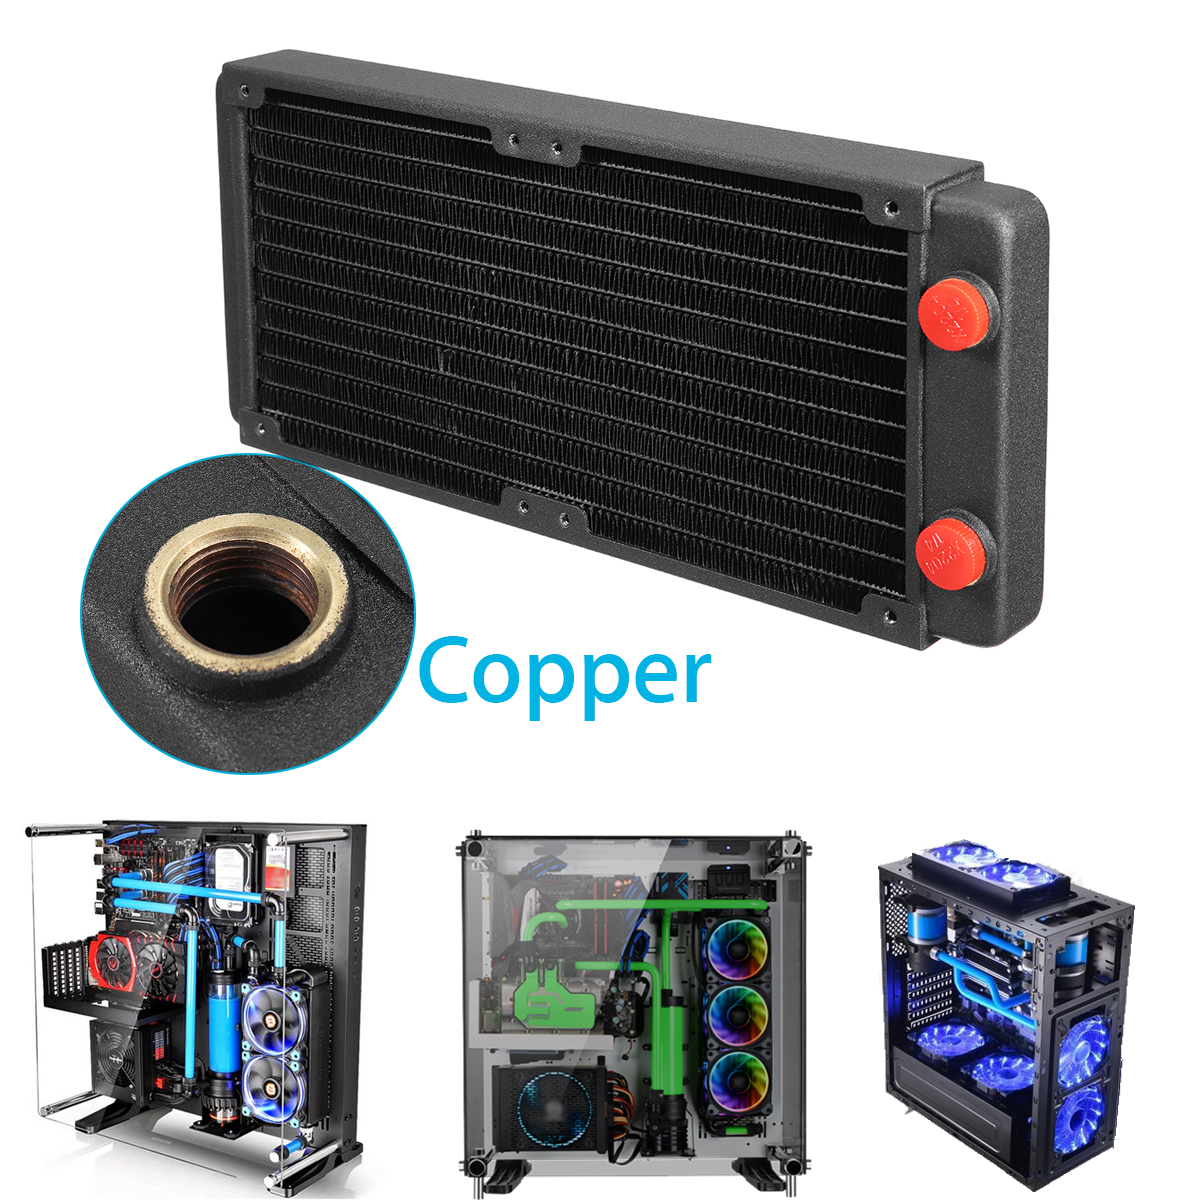 все цены на Copper Water Cooling 240mm Computer CPU Cooler Radiator Heatsink Radiator Exhaust Heat Exchanger Water Cooling Cooler онлайн